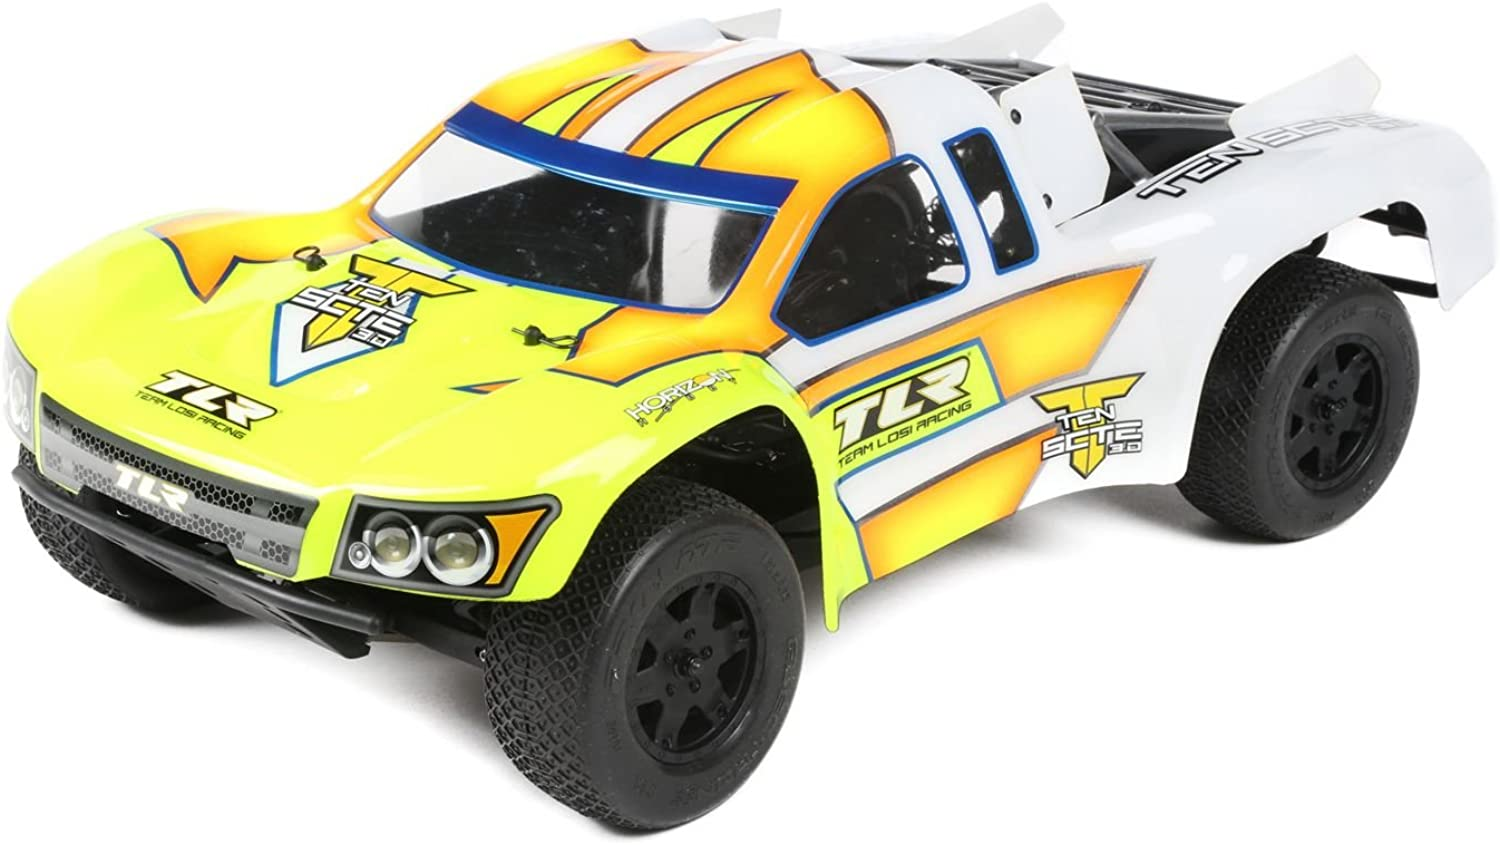 Ten-SCTE 3.0 Race Kit  1 10 4WD SCT